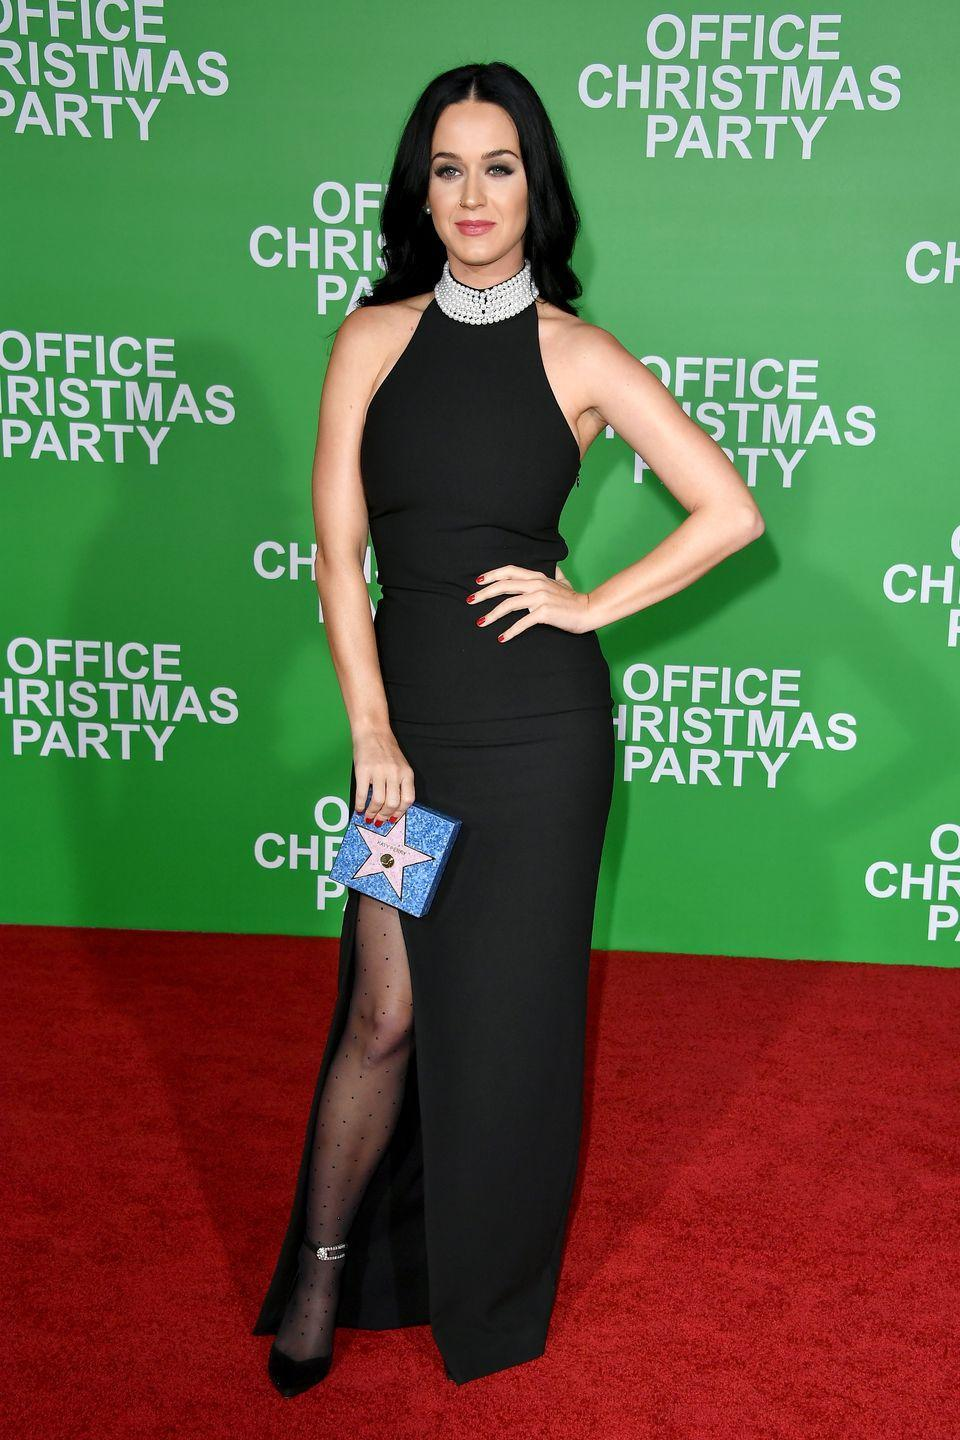 <p>Katy Perry attends the premiere of Paramount Pictures' 'Office Christmas Party' at Regency Village Theatre on December 7, 2016 in Westwood, California.</p>